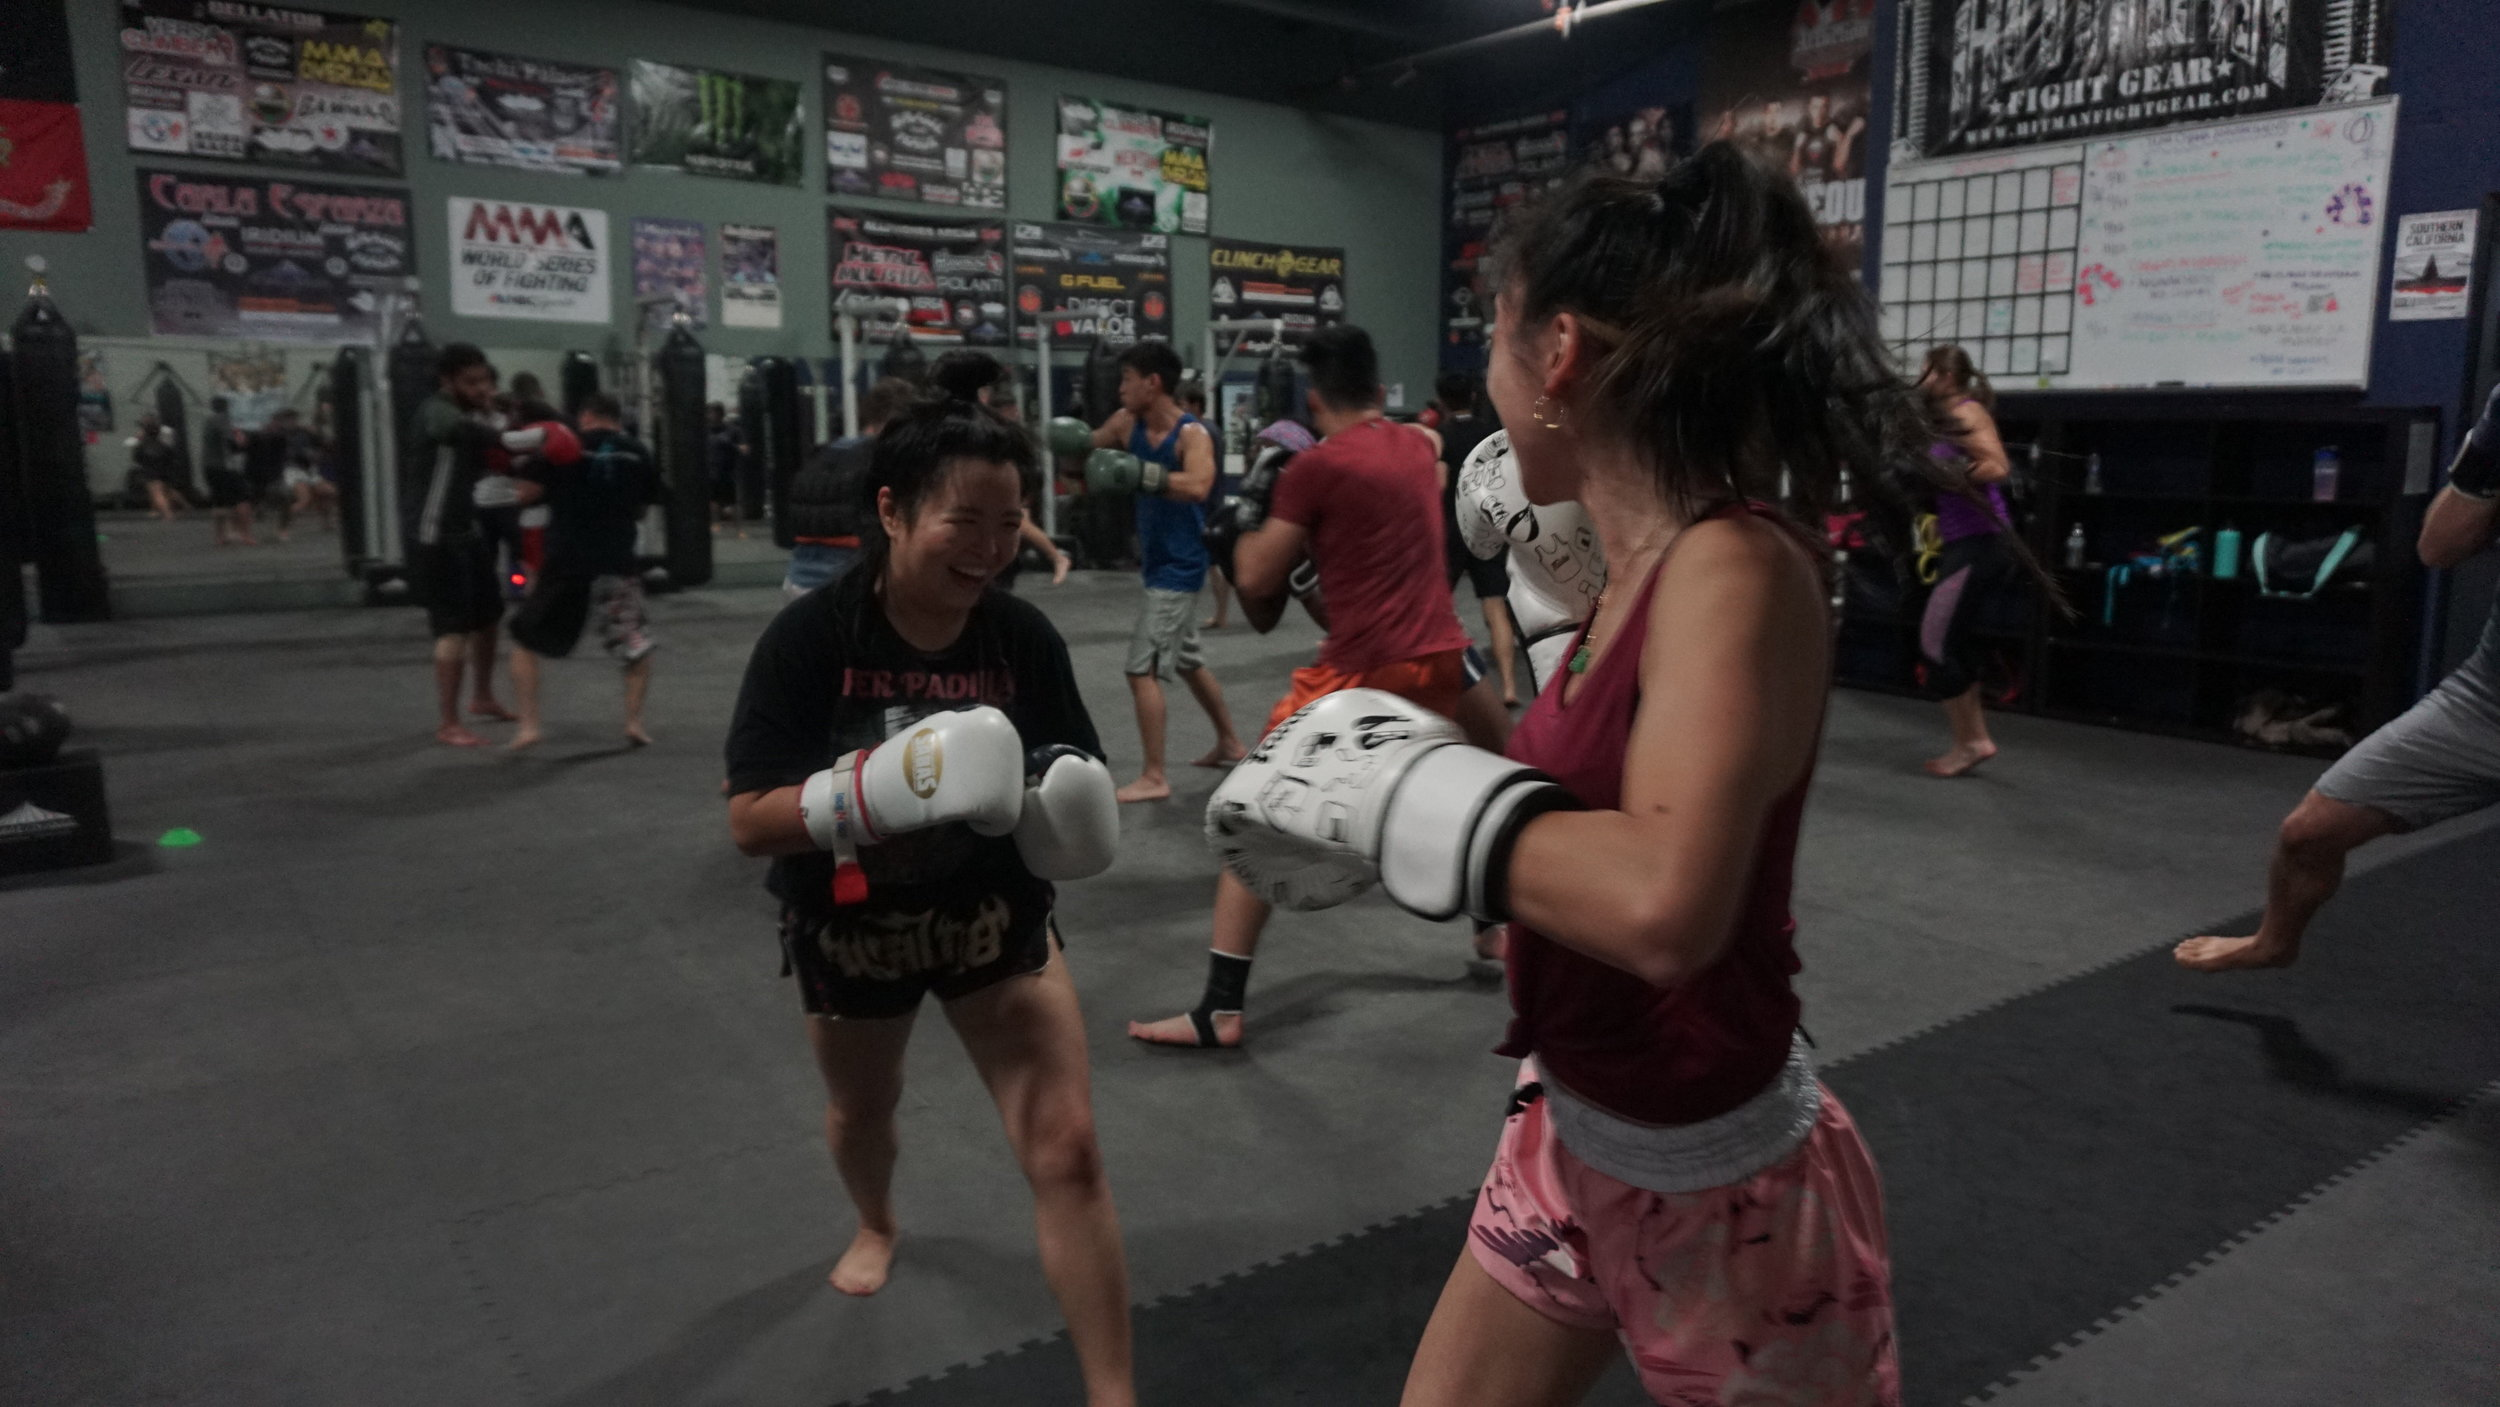 Come see what Muay Thai is all about!